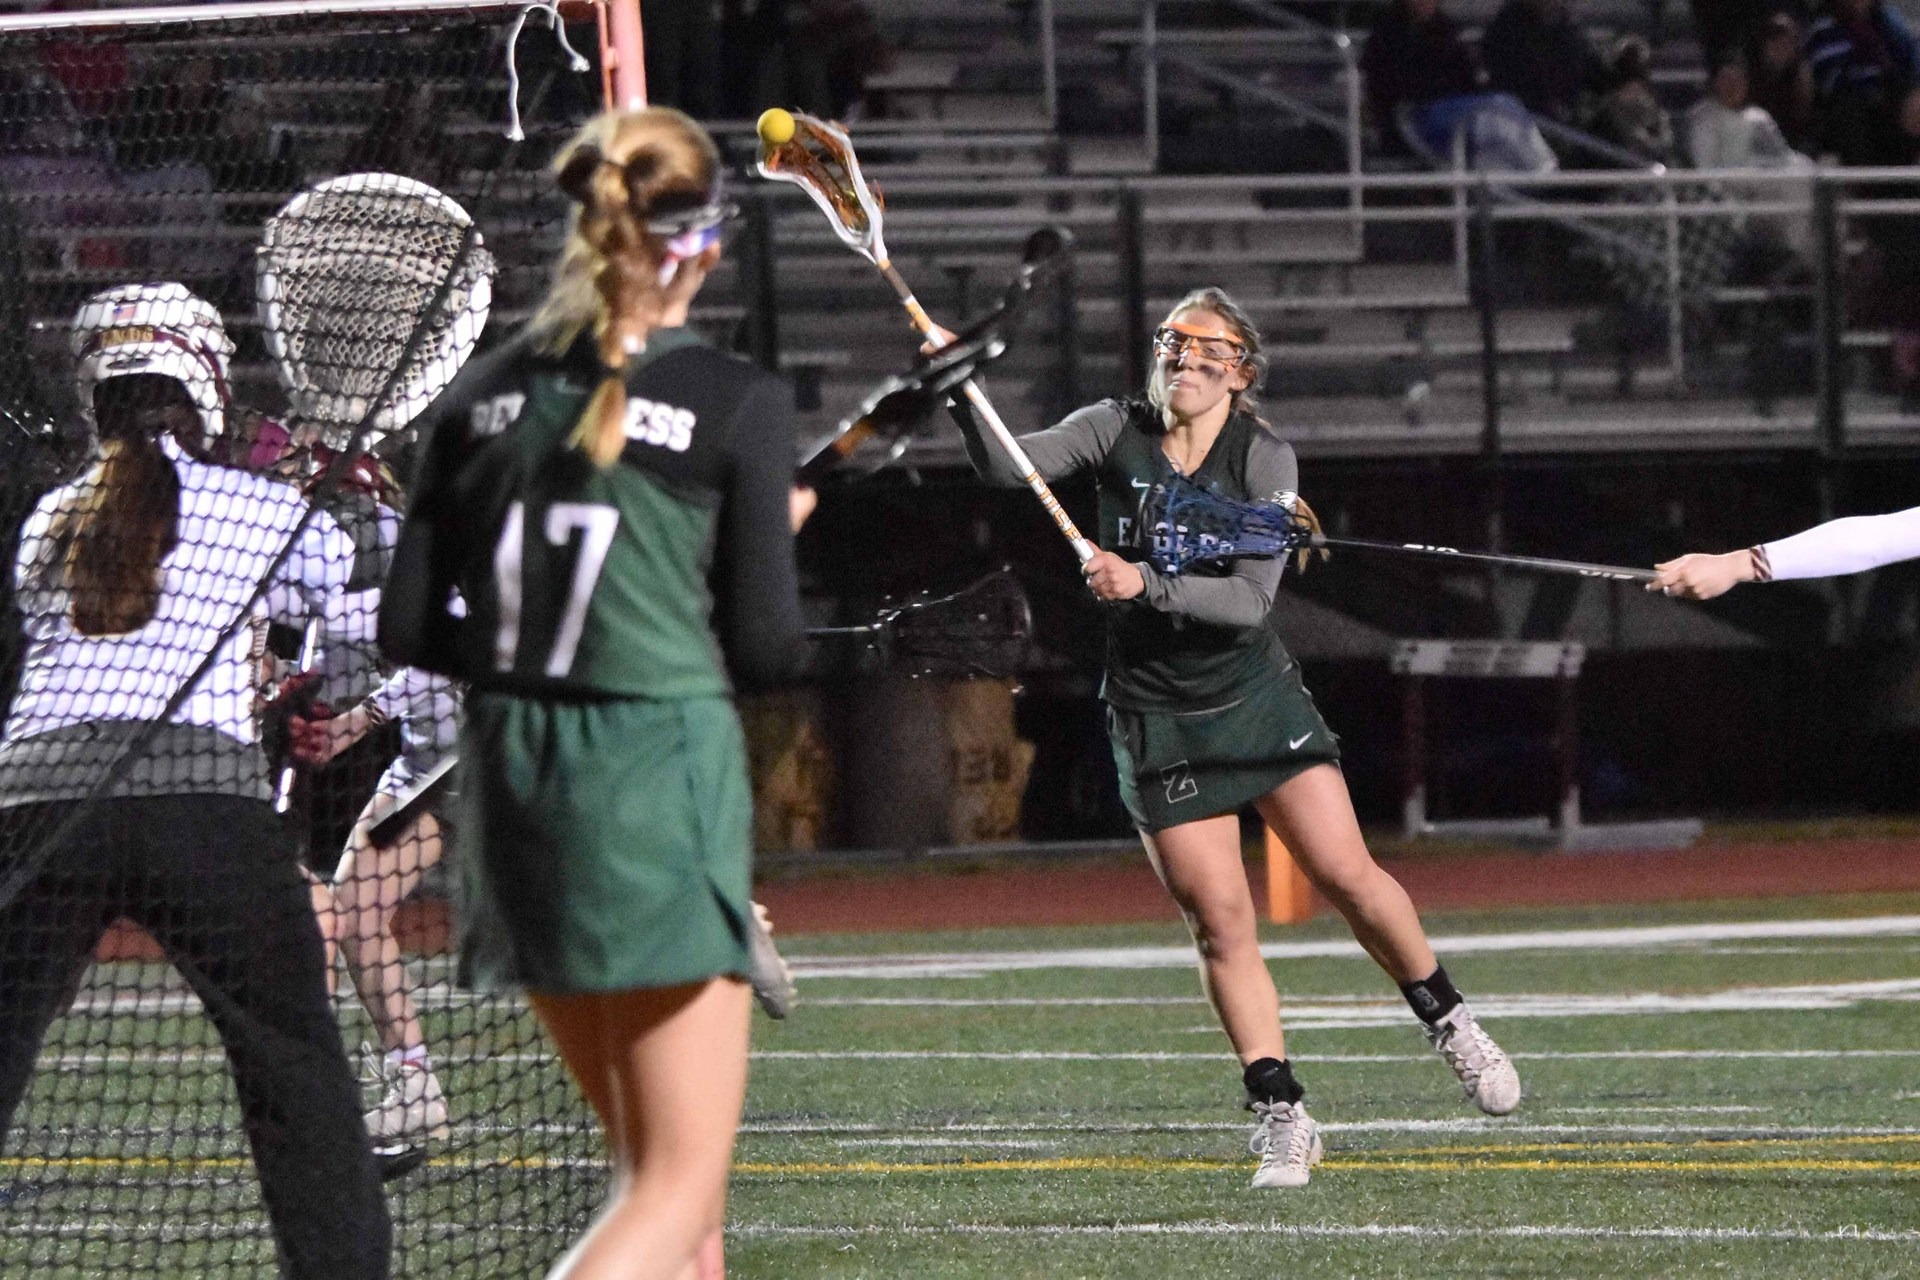 Girls Lacrosse action photo